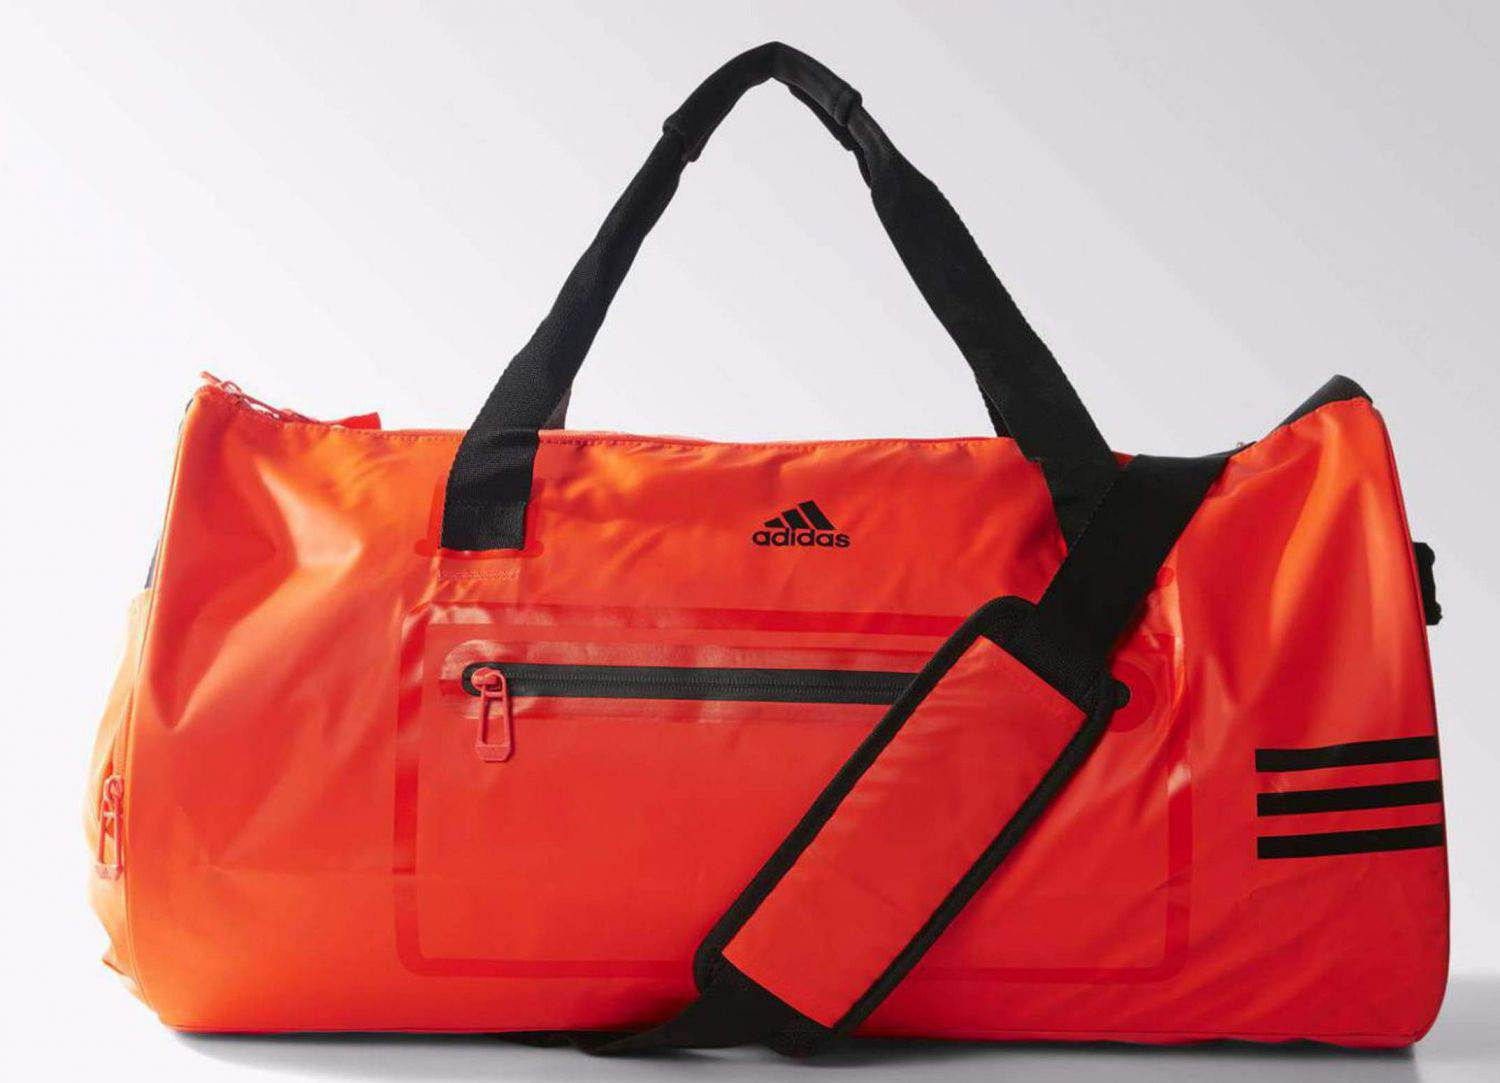 adidas Climacool Teambag M Sporttasche (Farbe: solar red/black/black)